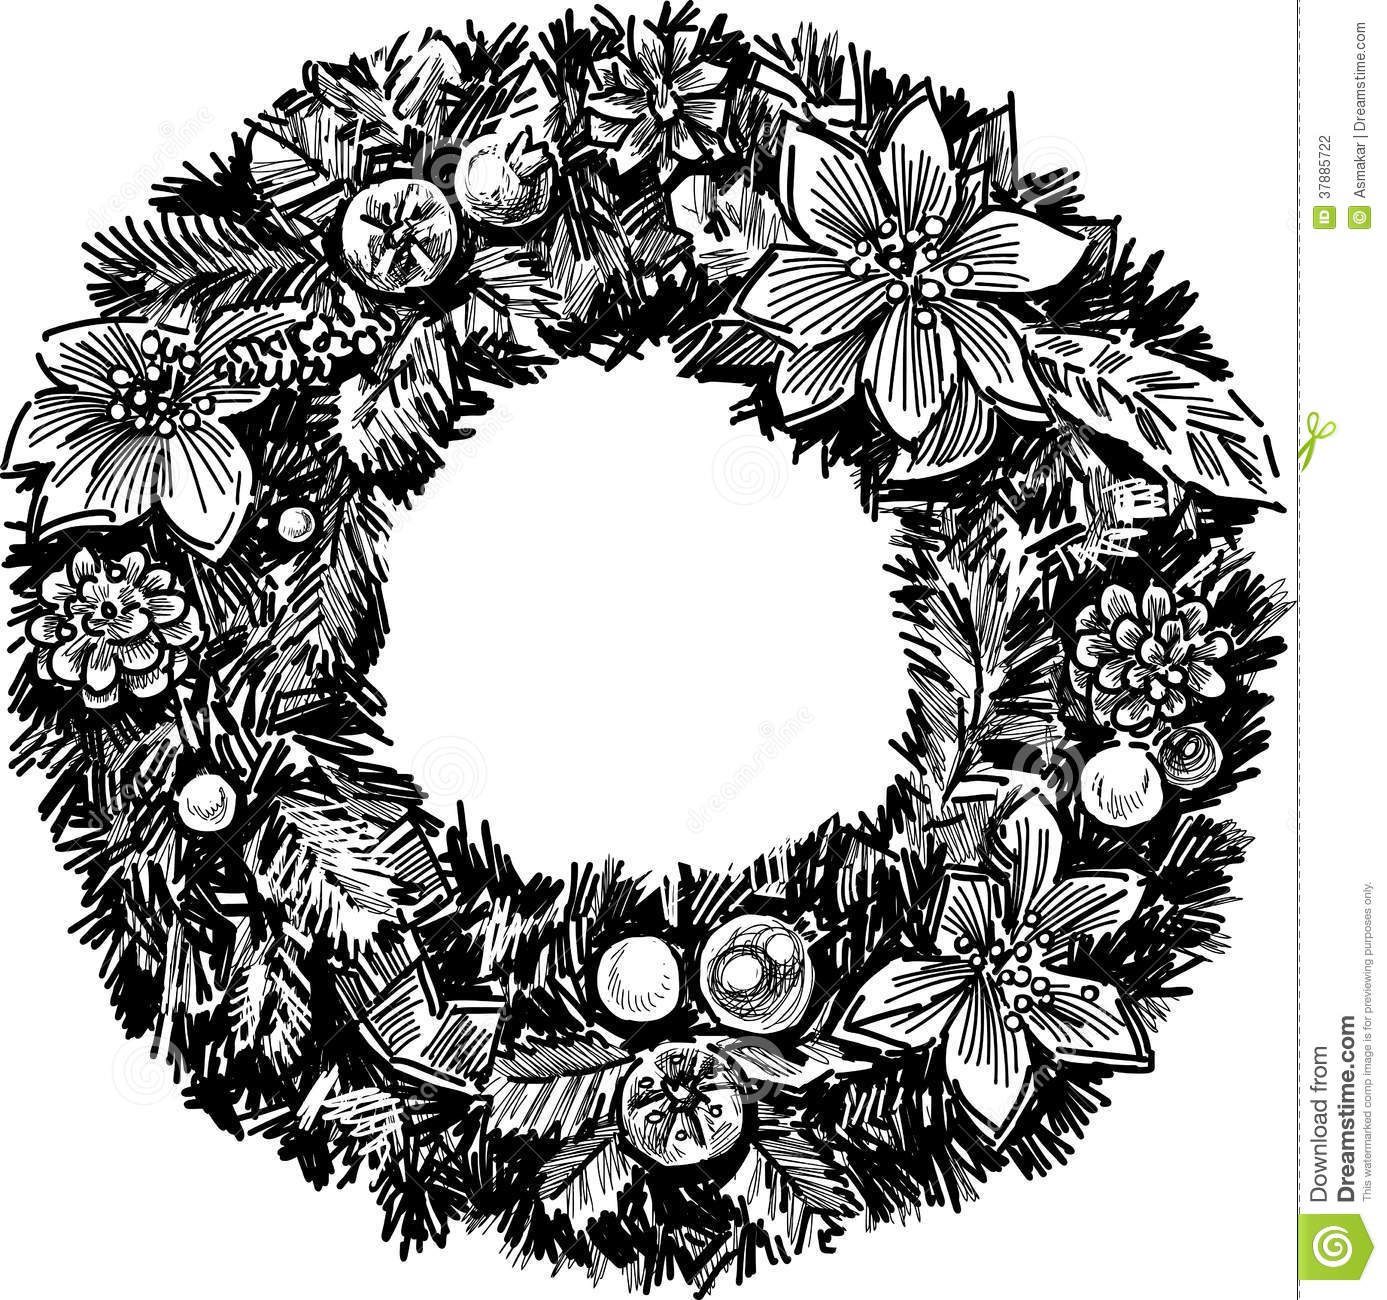 christmas wreath - Christmas In Black And White